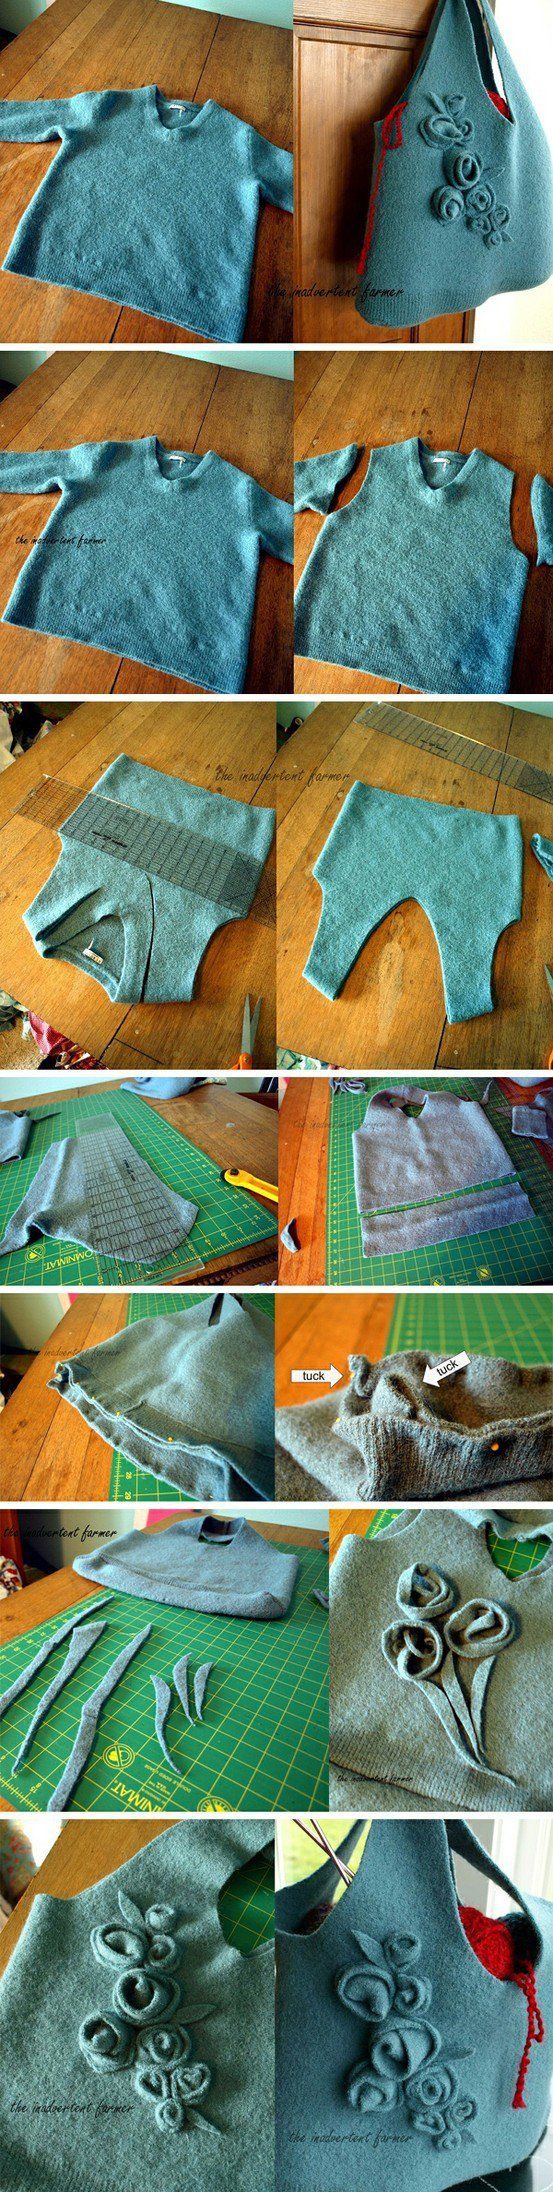 Repurposed Sweater Bag  http://www.fashiondivadesign.com/diy-interesting-easy-craft-ideas/